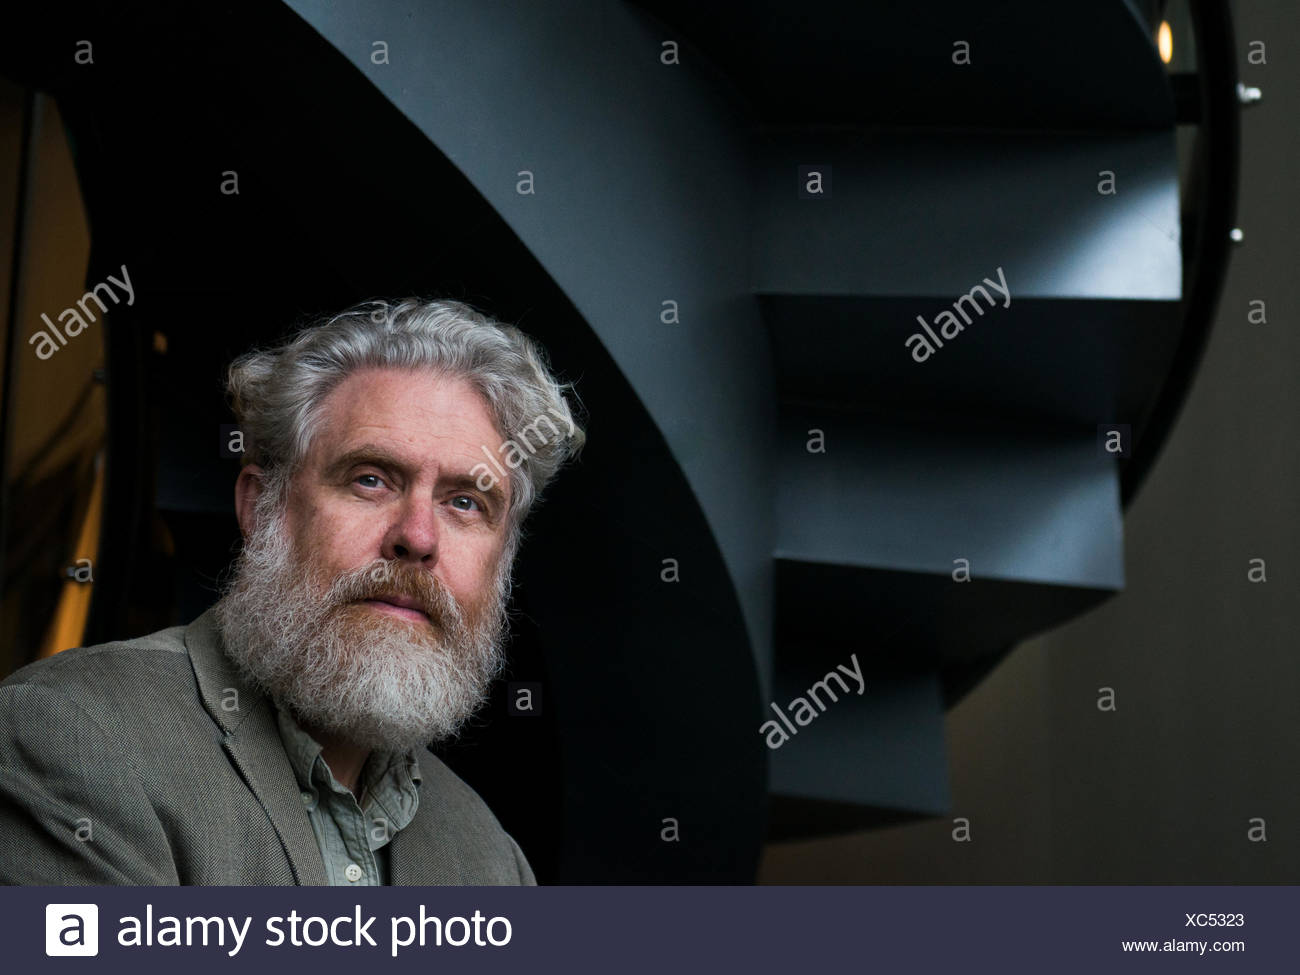 Portrait of Dr. George Church, initiator of The Human Genome Project, at Harvard University. - Stock Image